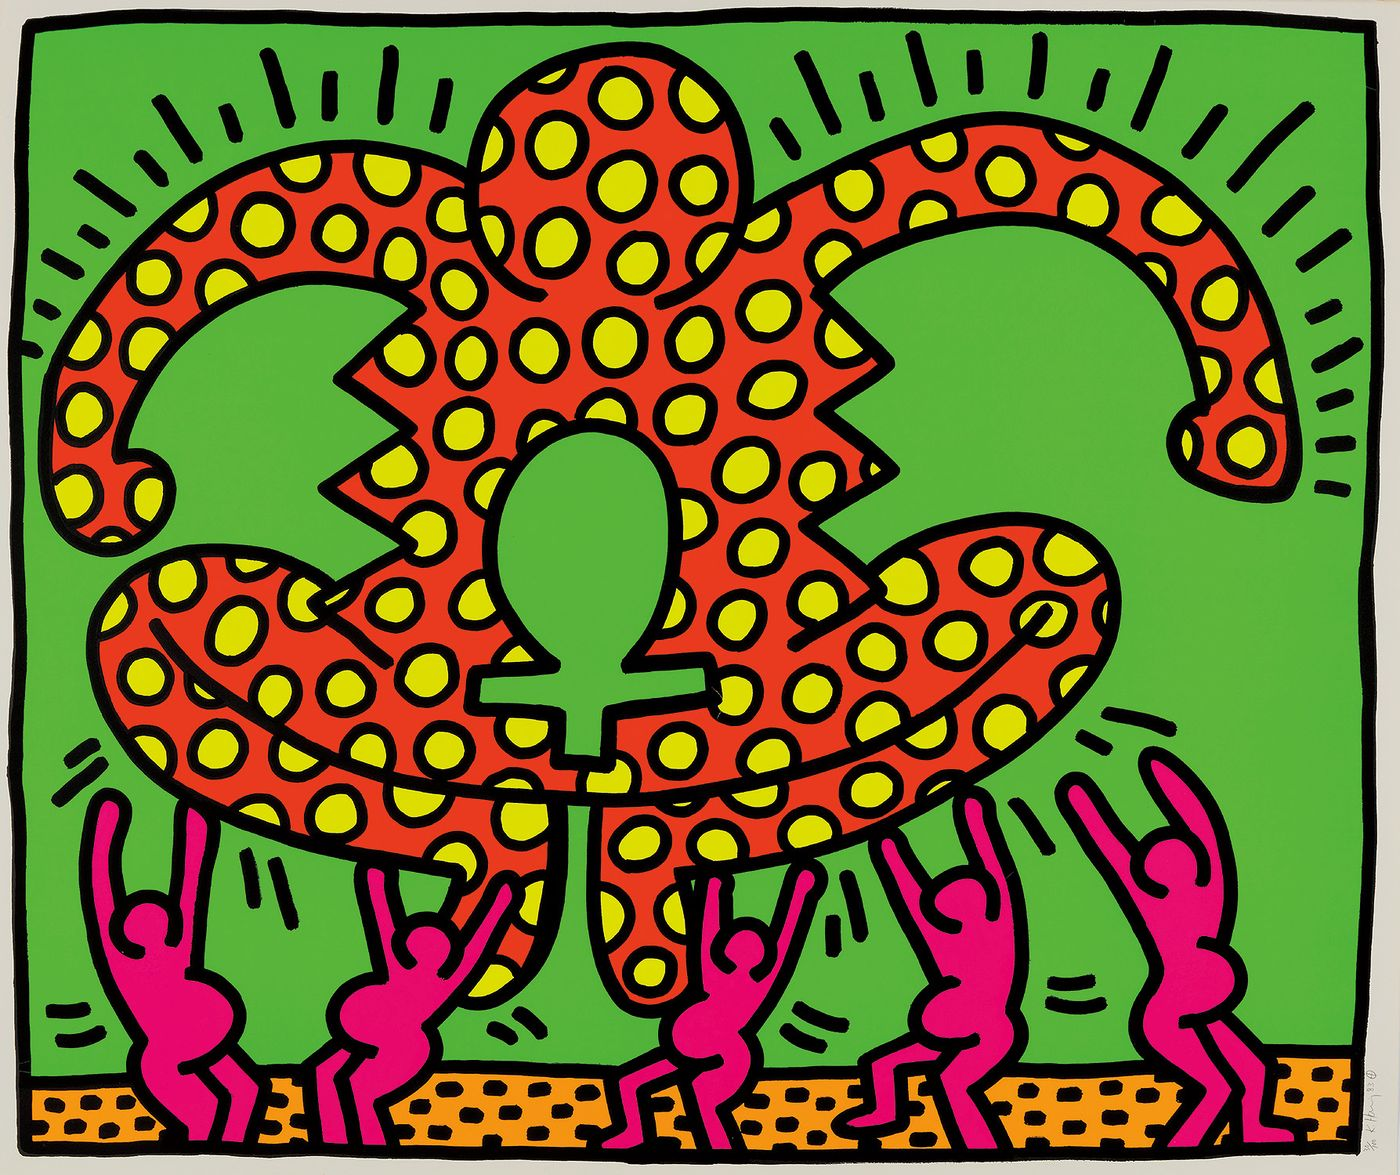 We take a closer look at some of the complete sets from artists like Haring, Warhol and Johns coming to auction in our October Editions sale.